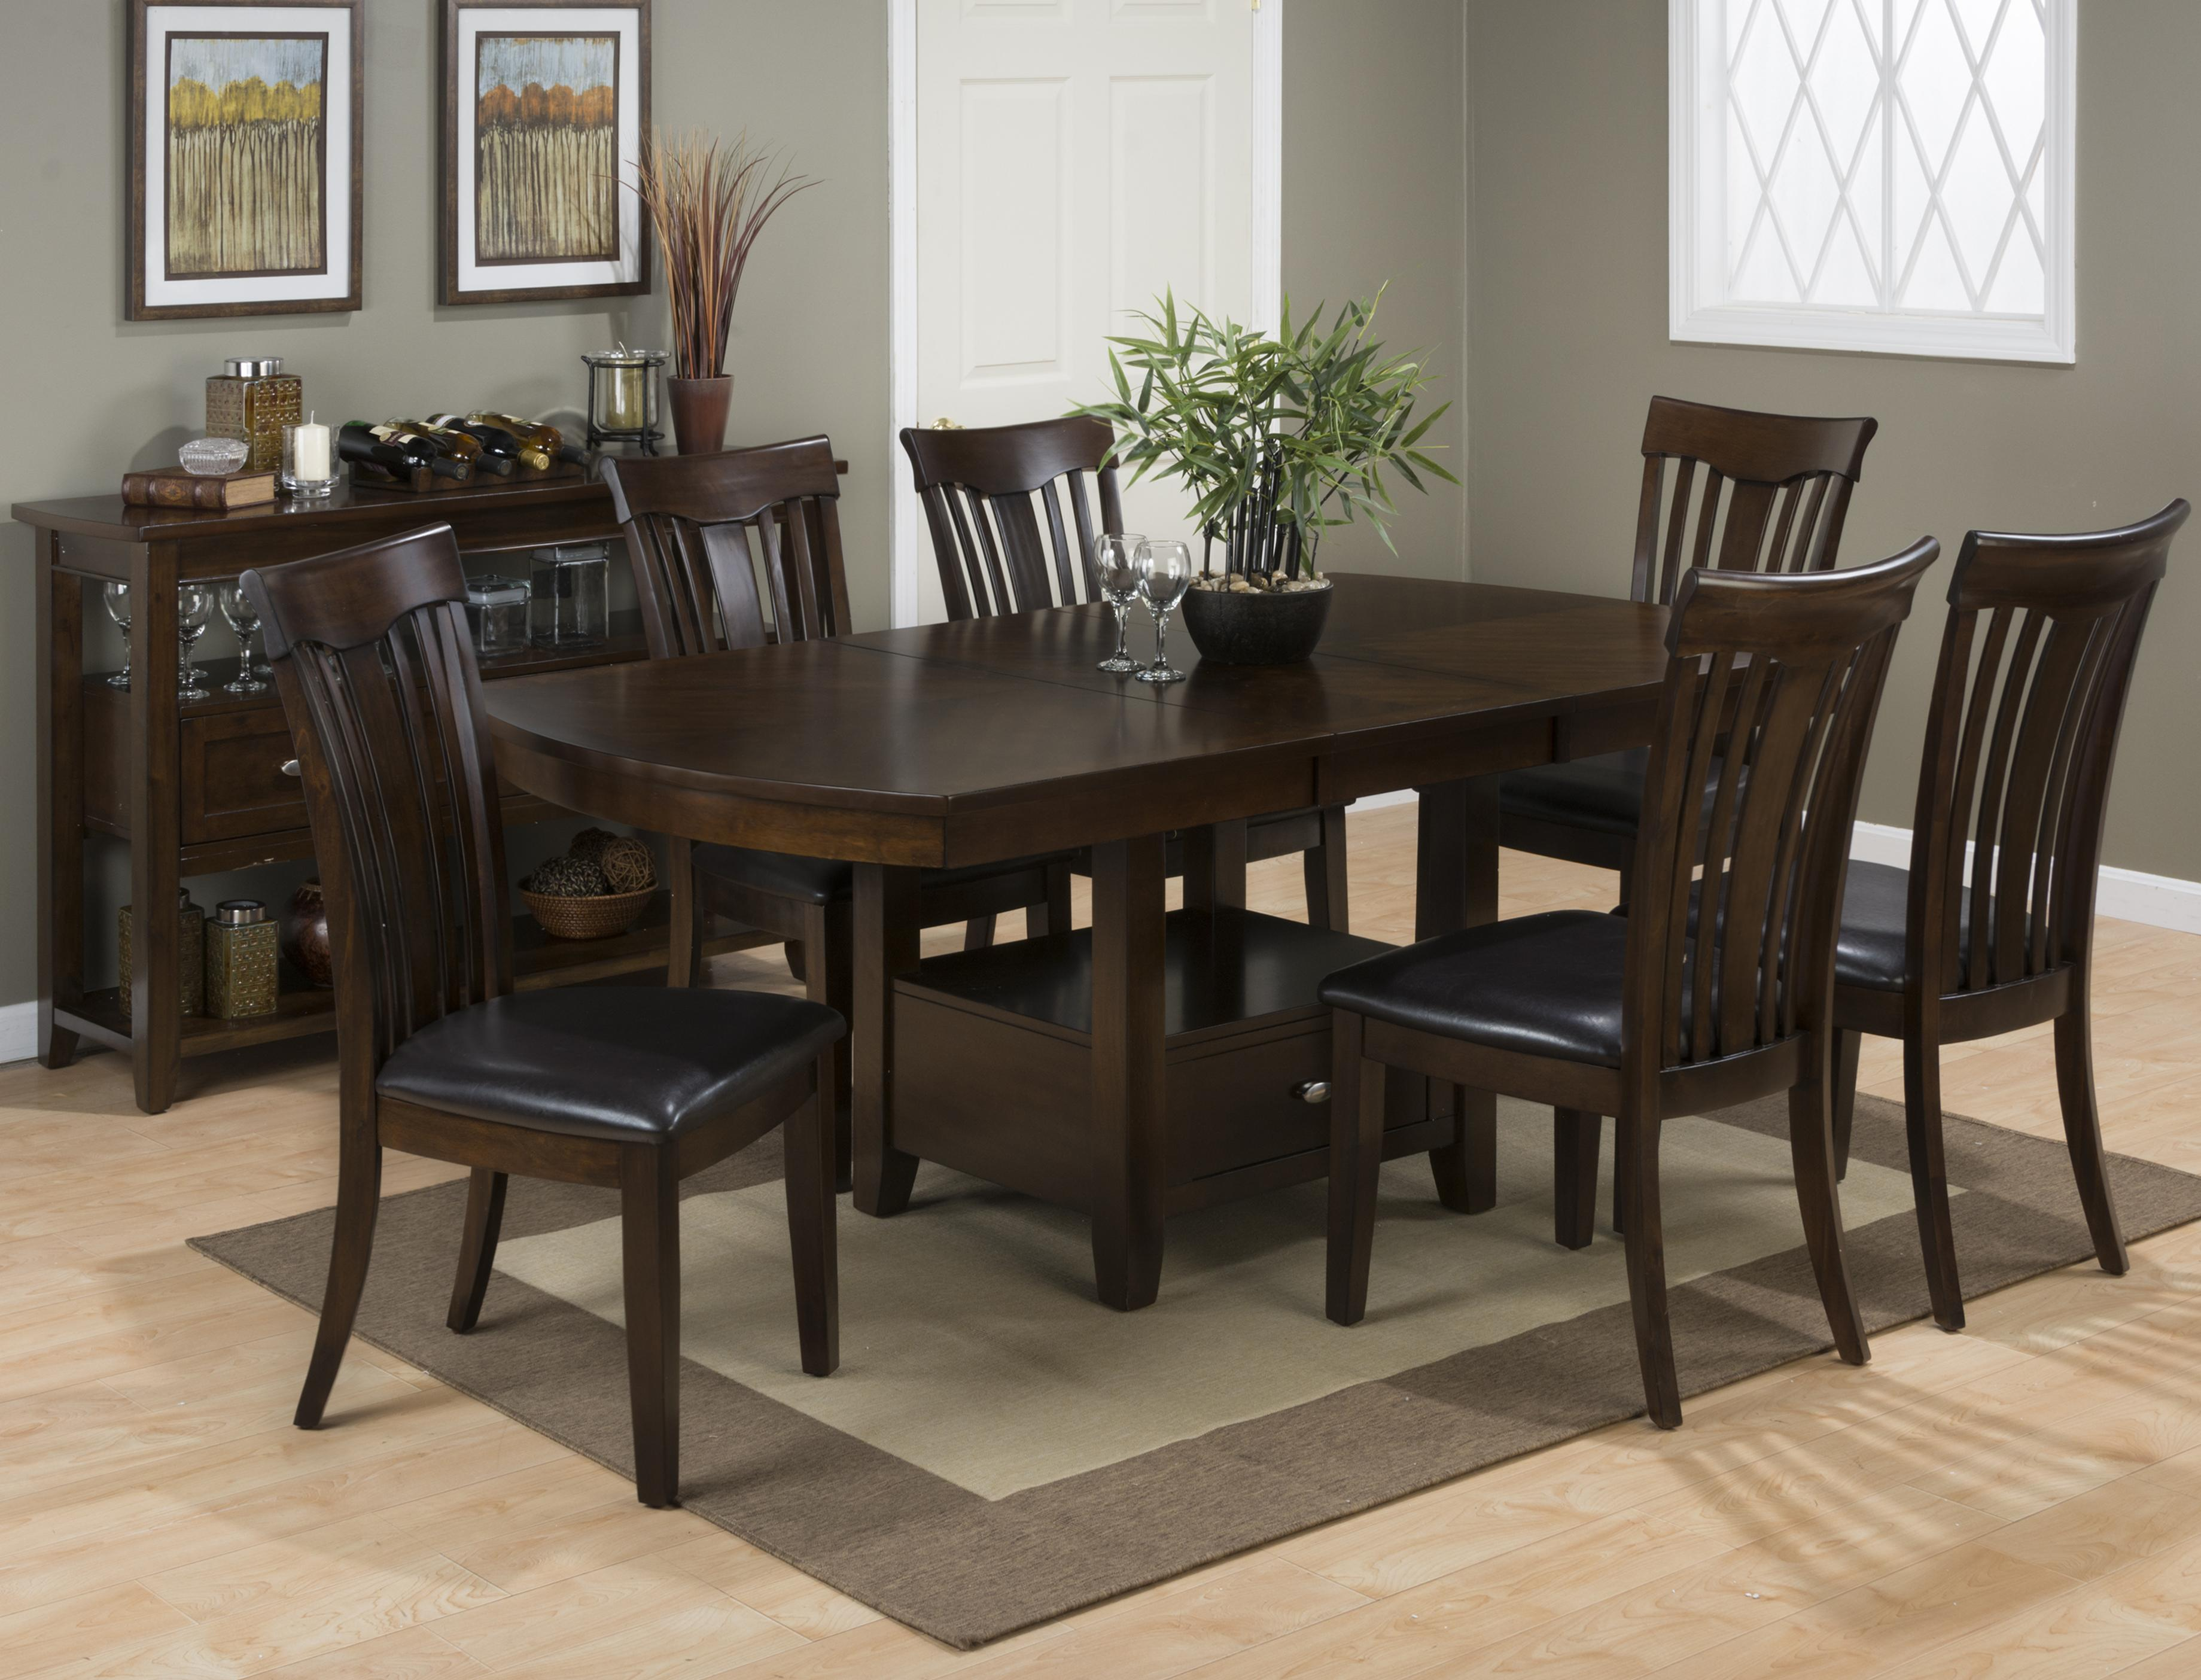 Jofran Mirandela Birch Casual Dining Room Group | Turk Furniture | Casual  Dining Room Group Joliet, La Salle, Kankakee, Plainfield, Bourbonnais,  Ottawa, ...